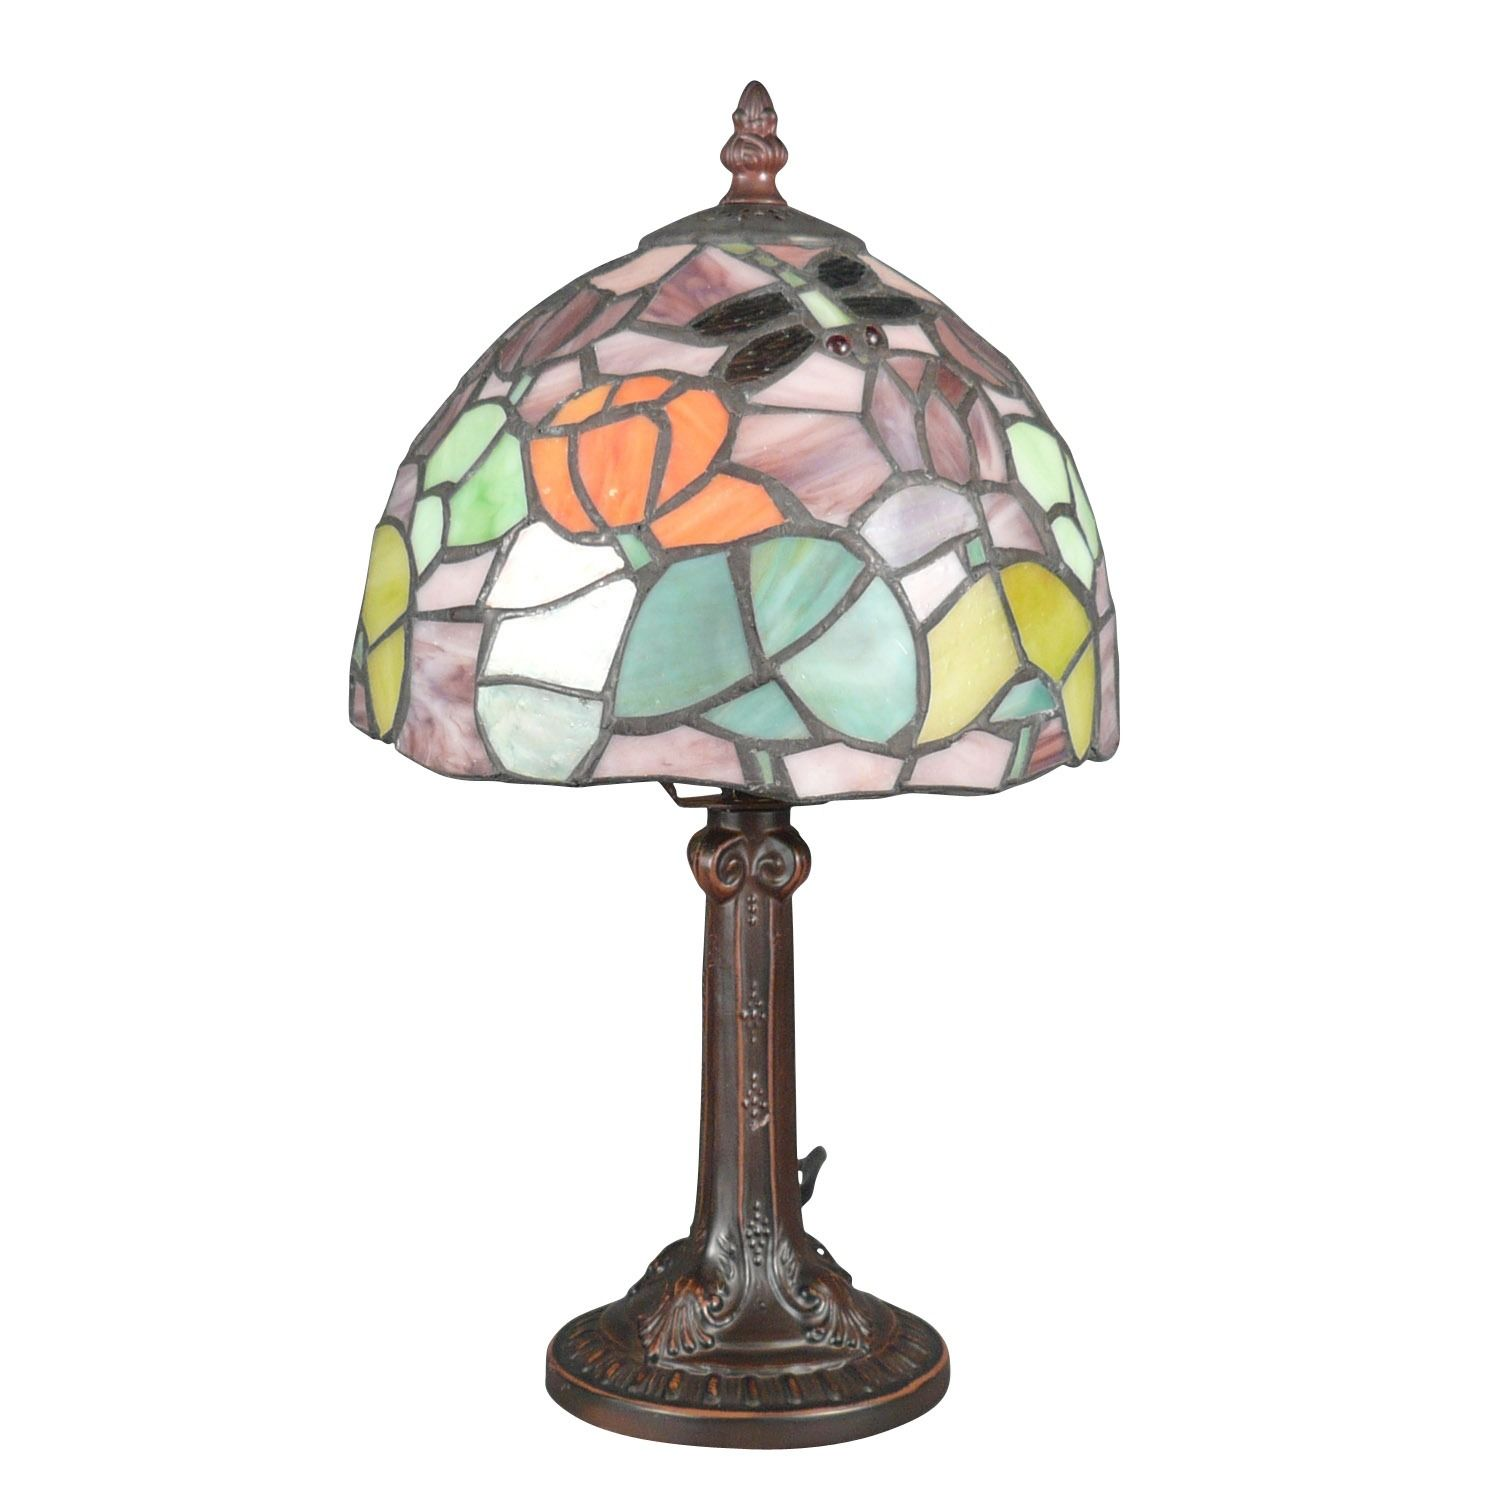 Tiffany Lampe Blaue Lilie Blume Tiffany Lamps Flower Lamp Shade Stained Glass Lamps